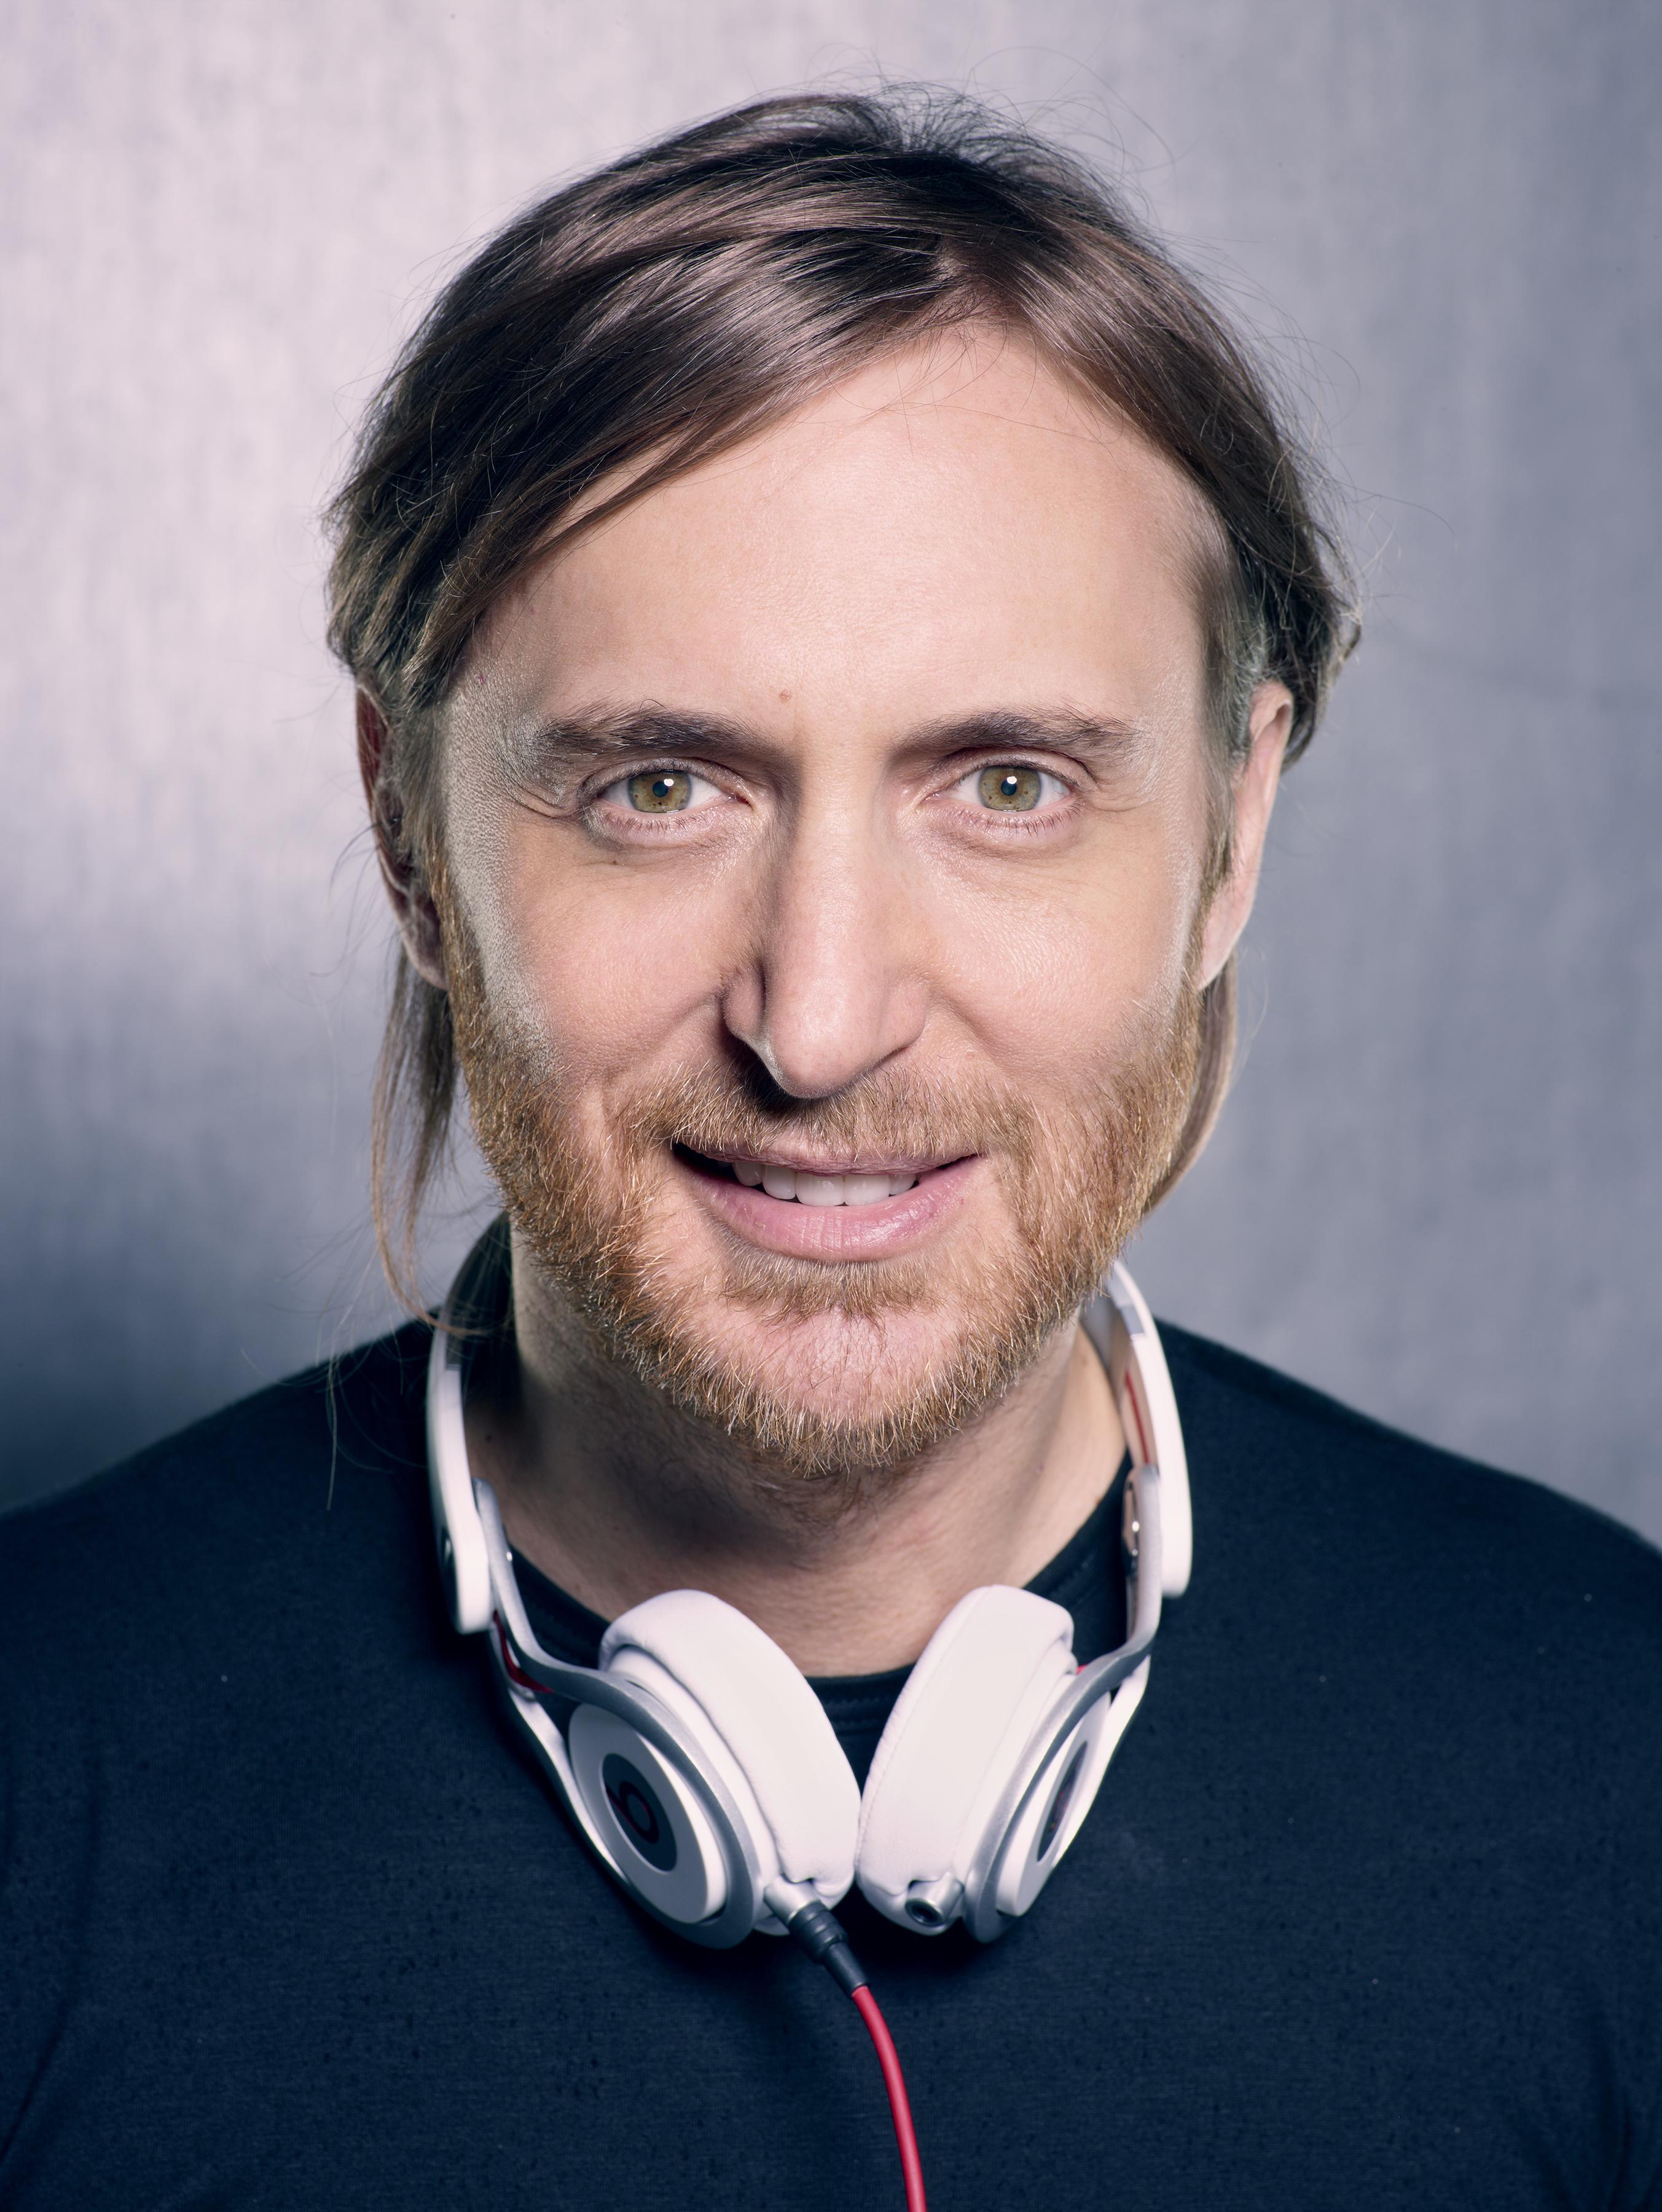 The 50-year old son of father (?) and mother(?) David Guetta in 2018 photo. David Guetta earned a  million dollar salary - leaving the net worth at 30 million in 2018